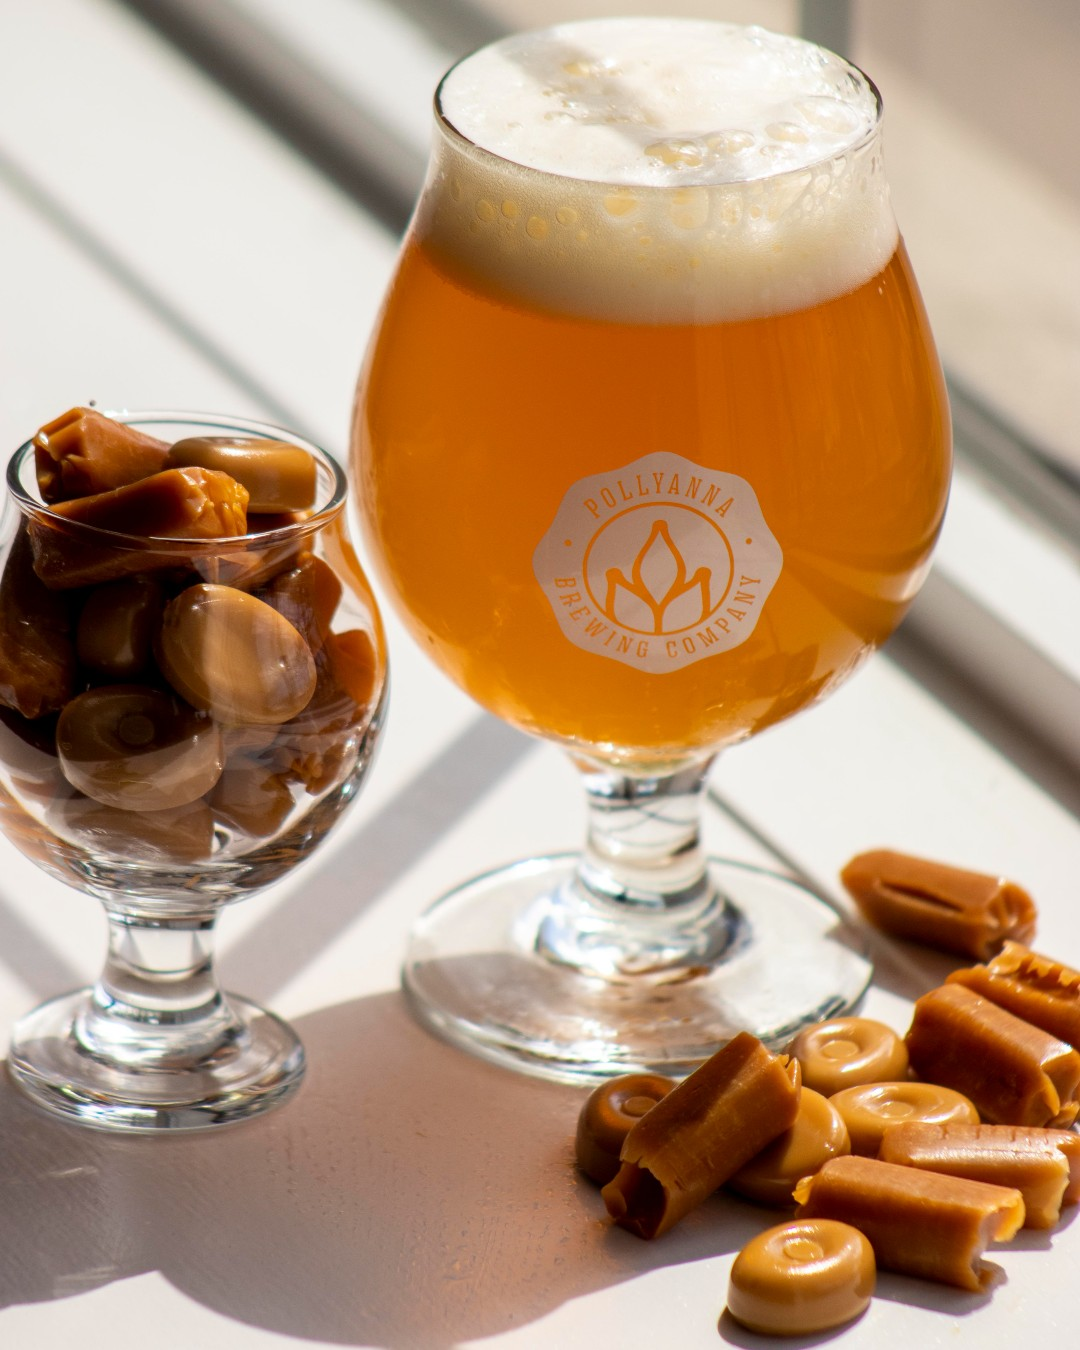 Glass of Pollyanna beer surrounded by caramel candies